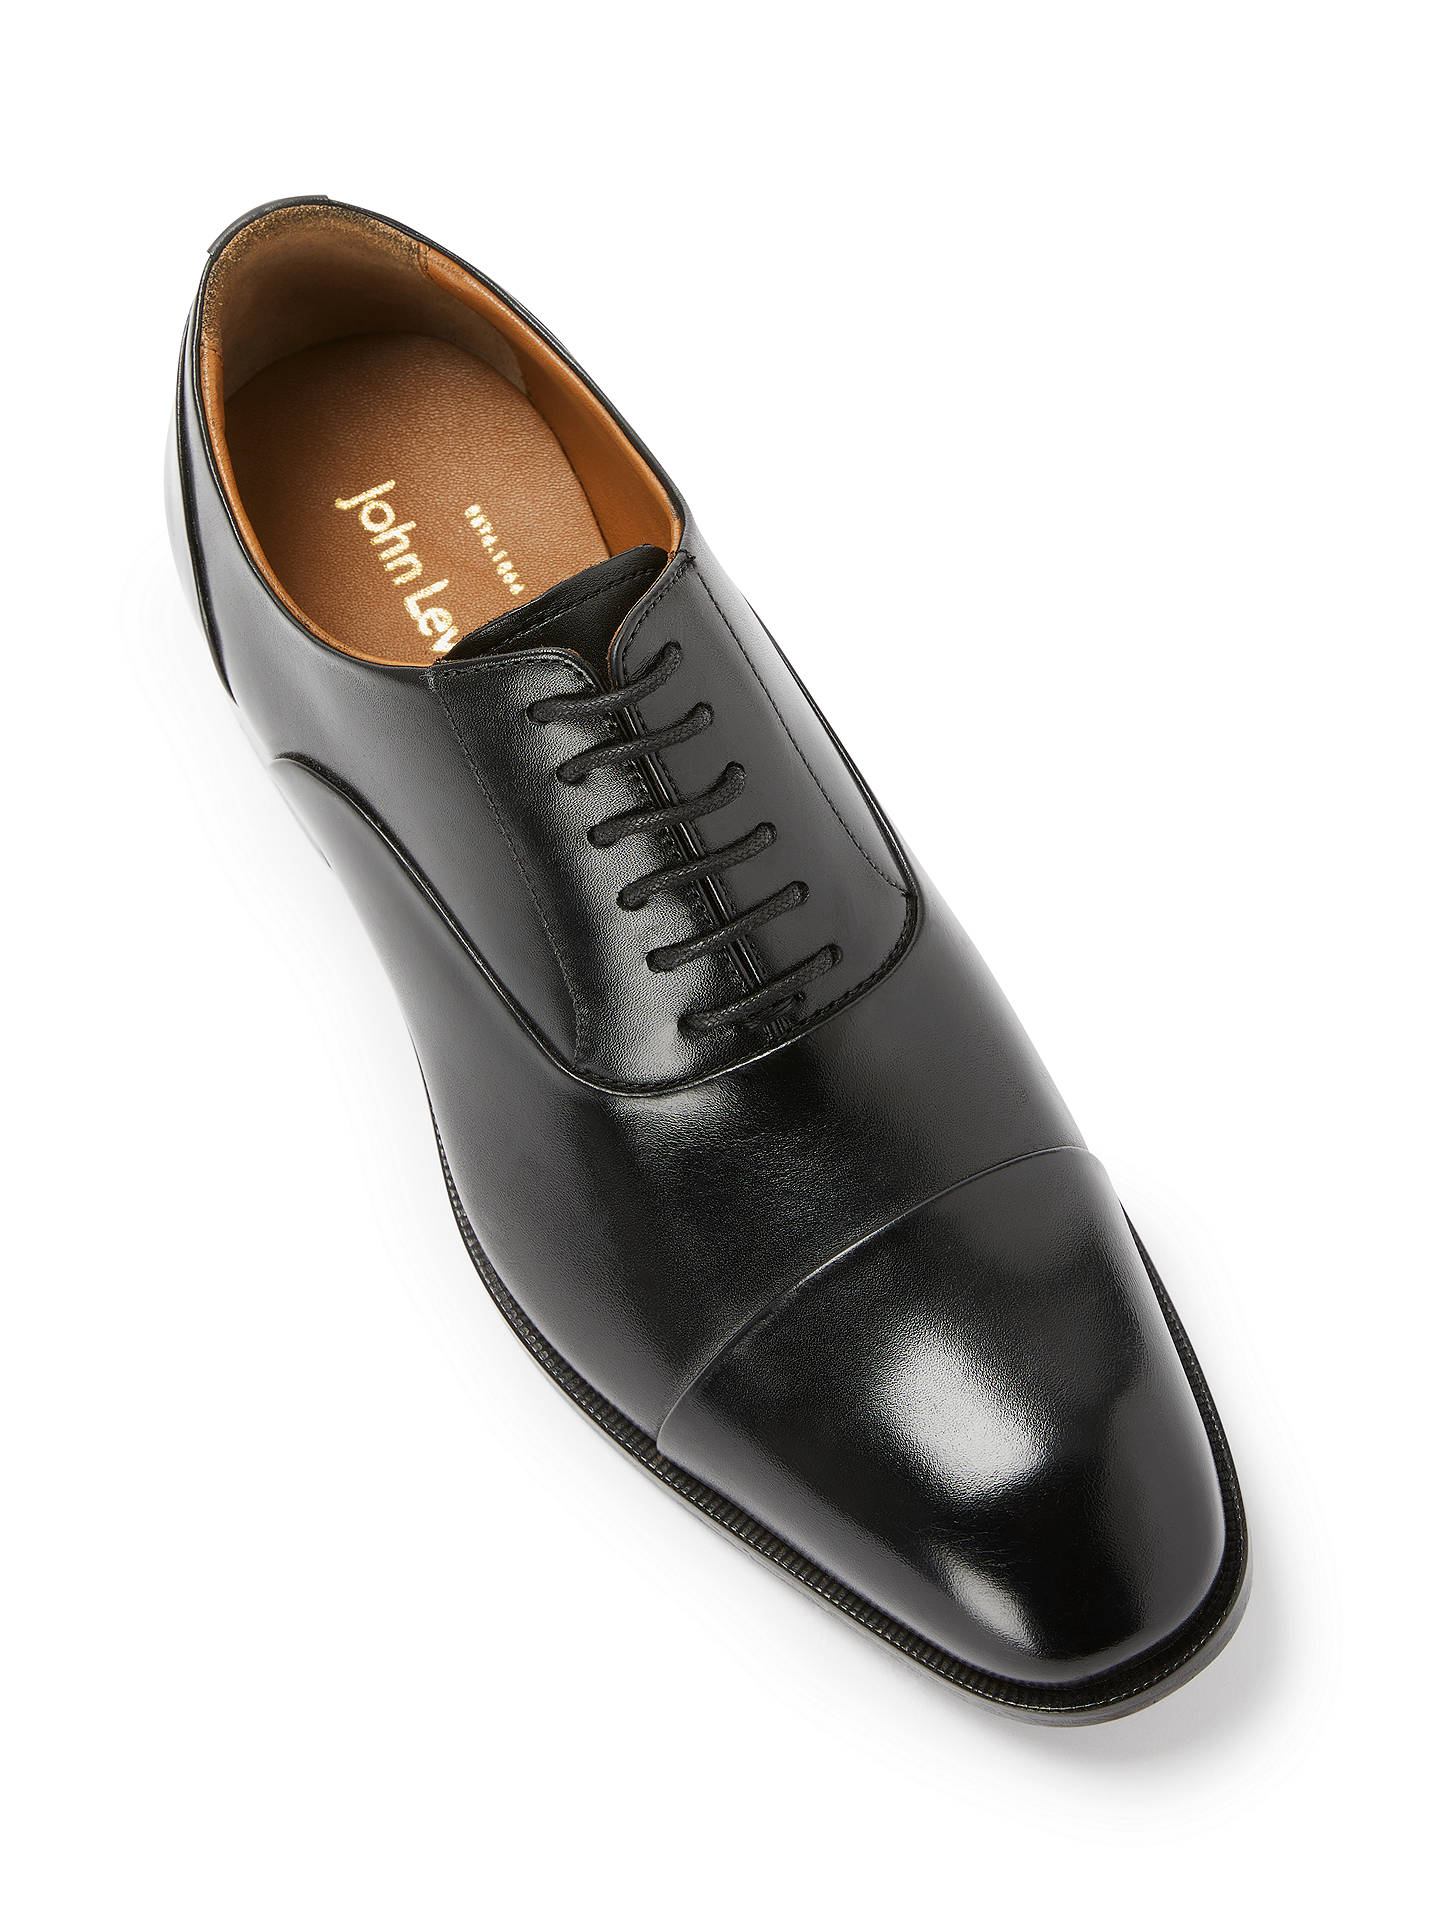 938ddb482 ... Buy John Lewis & Partners Goodwin Oxford Leather Lace-Up Shoes, Black,  7 ...